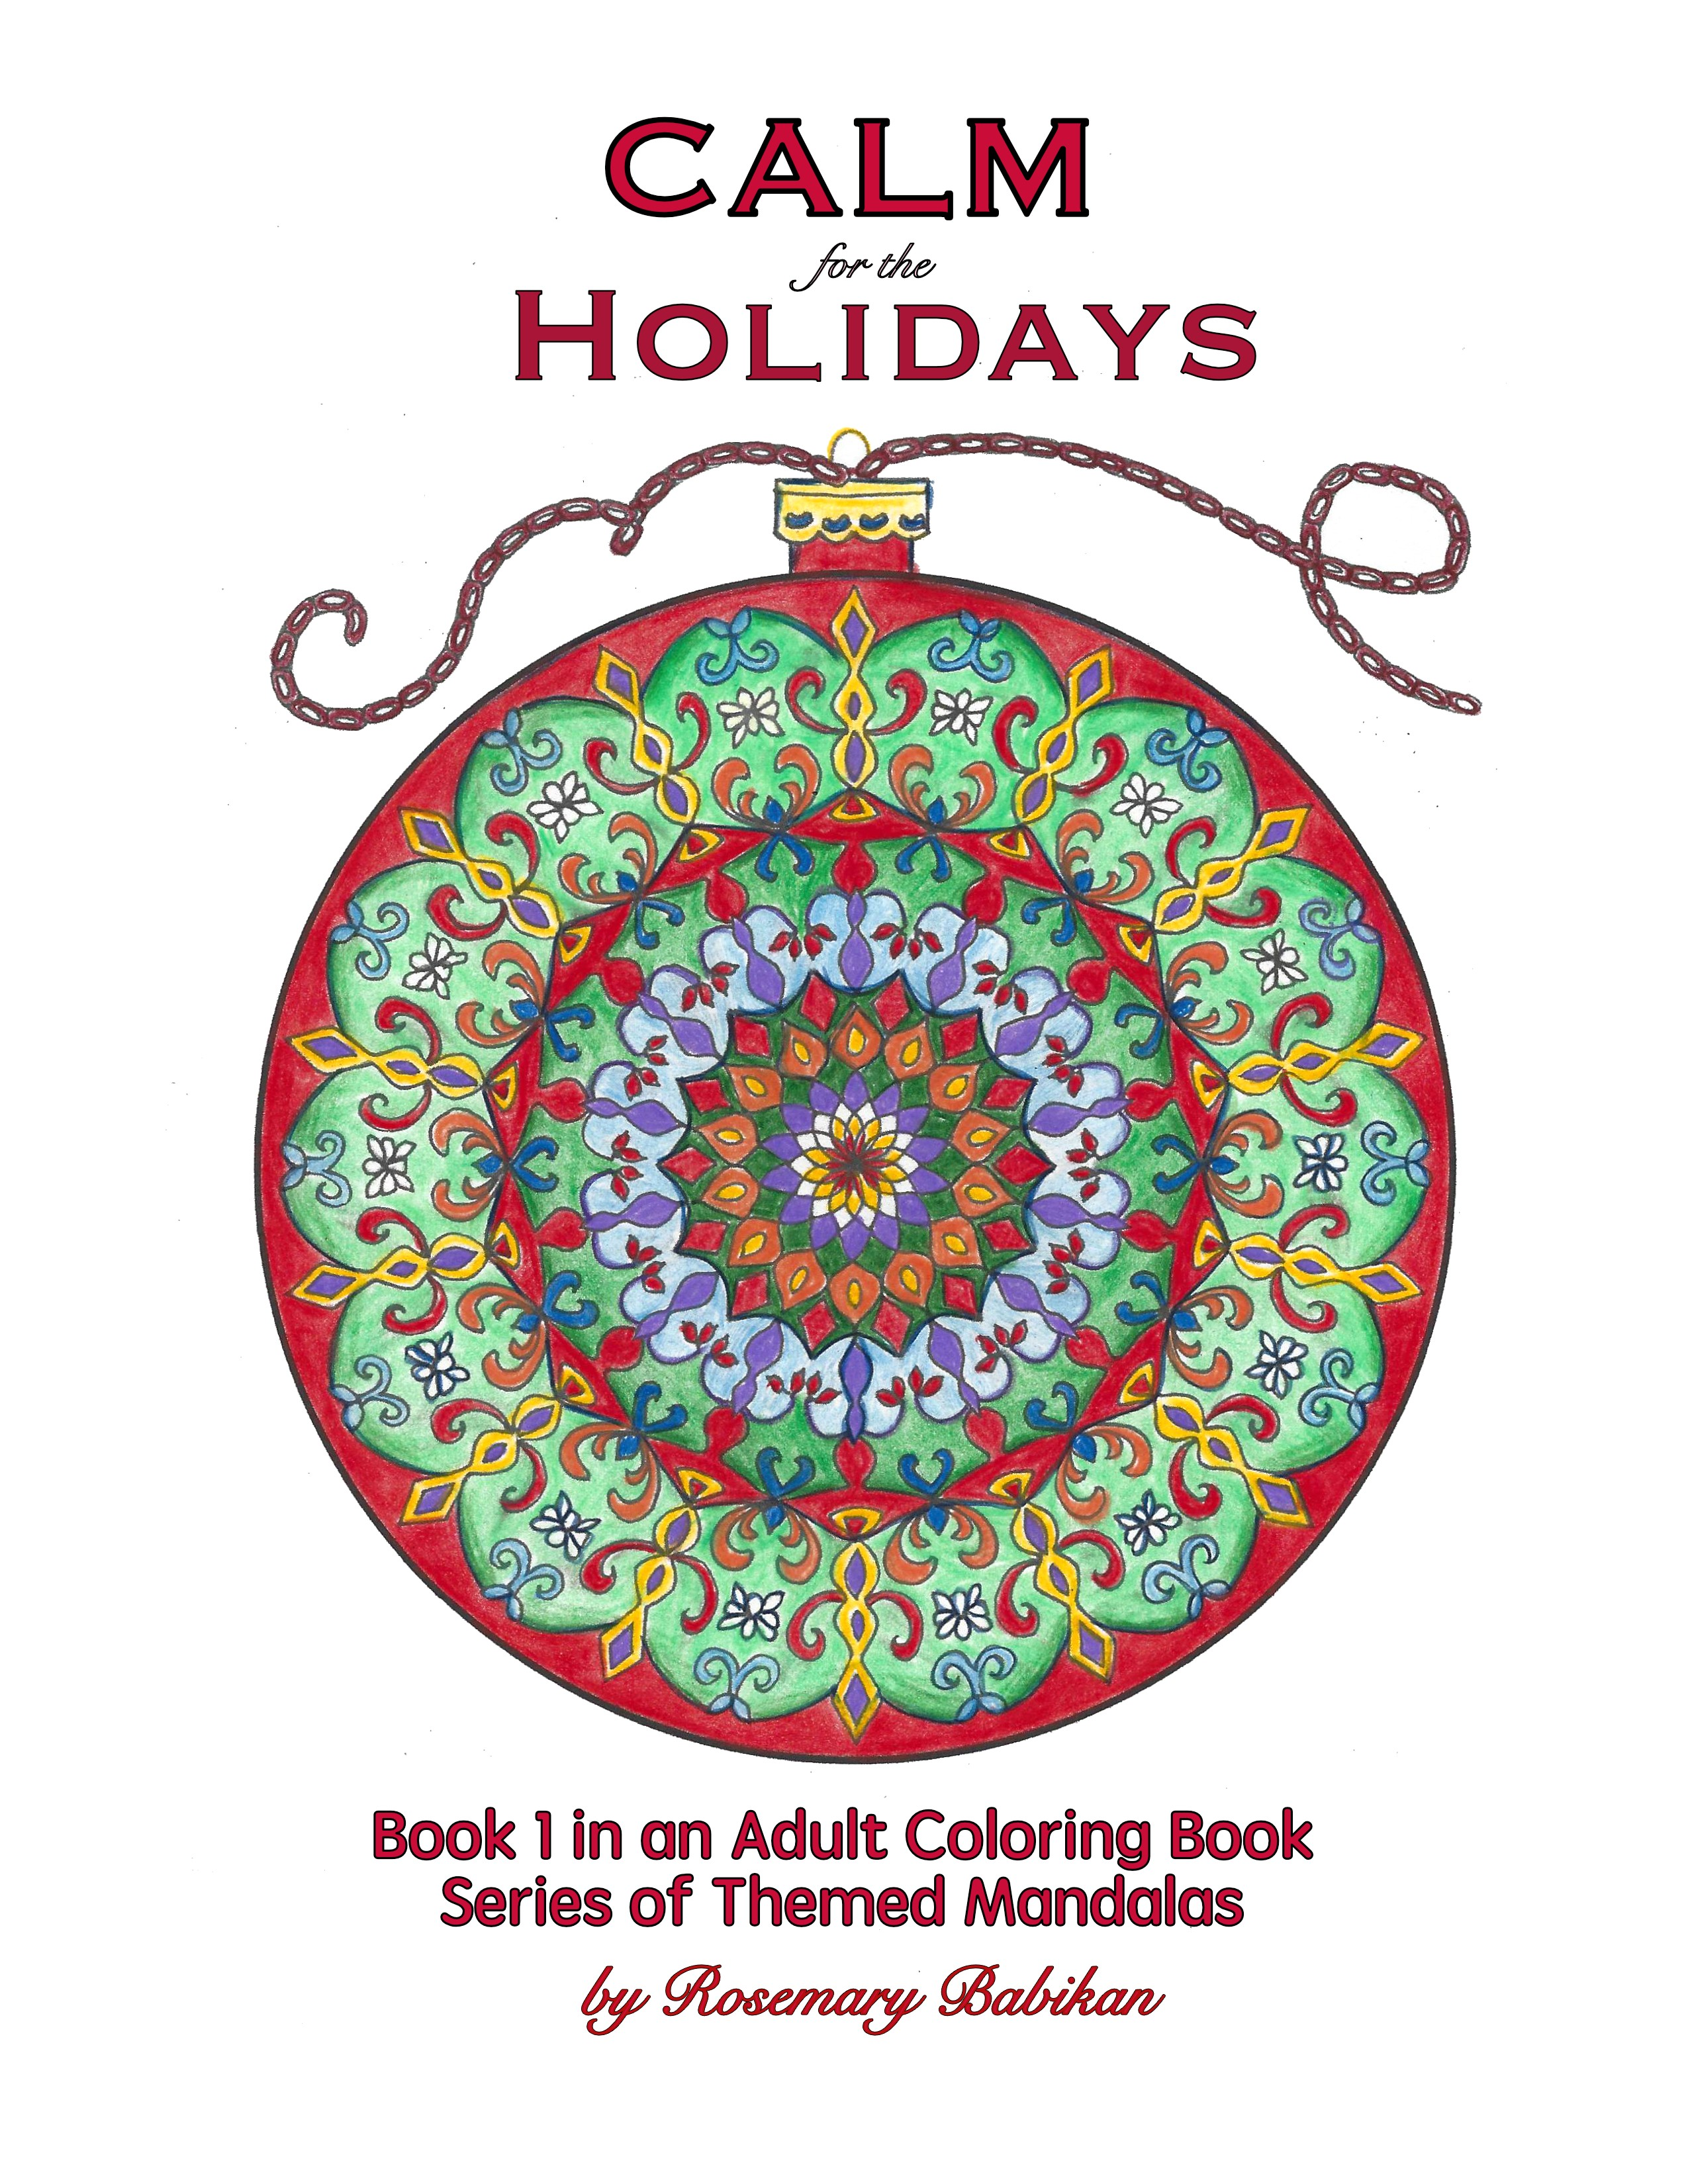 frontcover of Adult Coloring Book  Calm for the Holildays, Book 1 in an Adult Coloring Book Series of Themed Mandalas.  Adult Coloring Pages, beautifully hand-drawn. #adultcoloringpages #adultcoloringbooks #coloringforadults #mandalacoloringbooks #Christmascoloringbooks